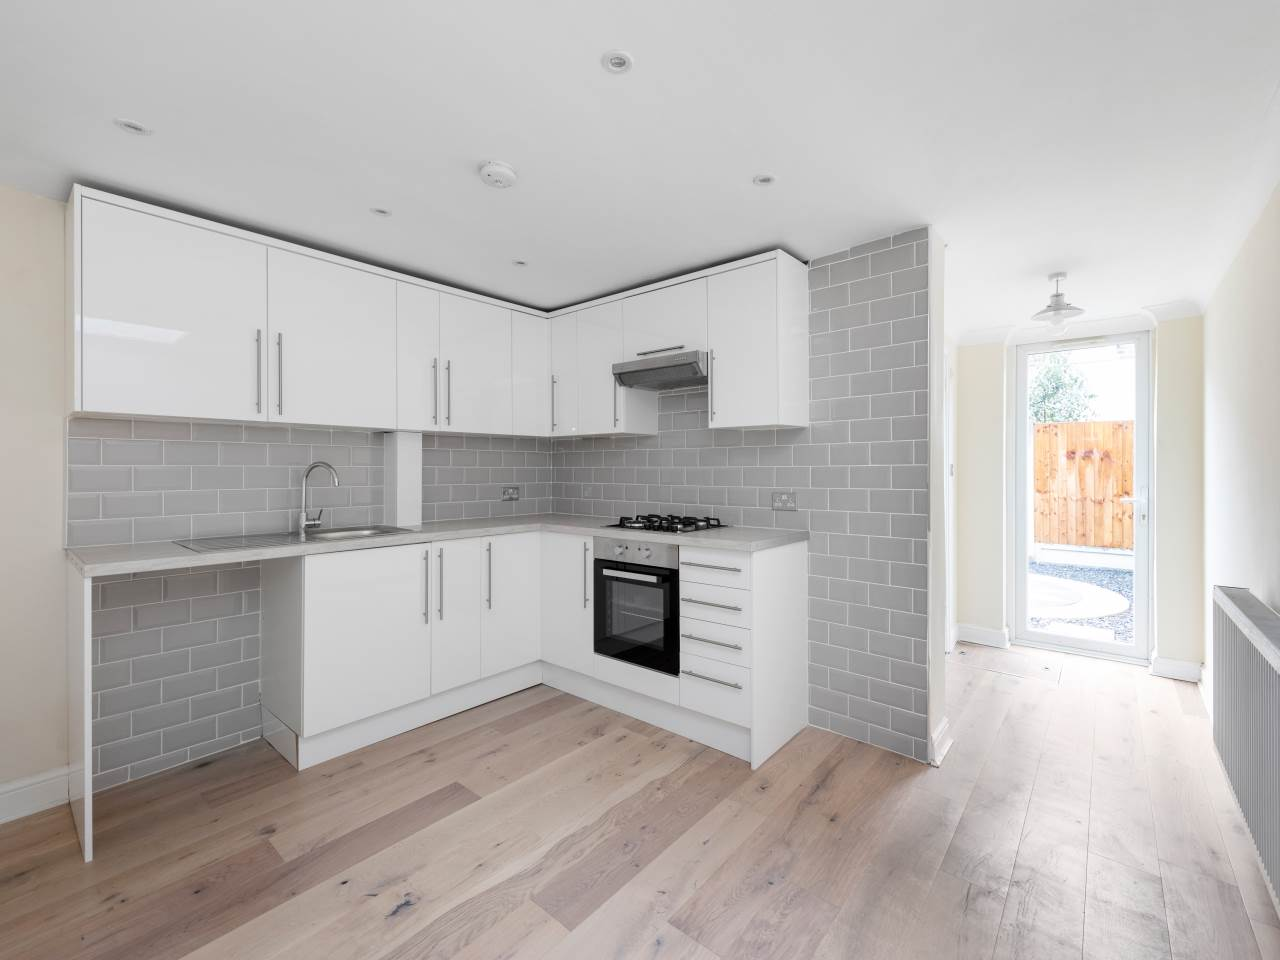 3 bed house for sale in Exning Road , Canning Town   - Property Image 2